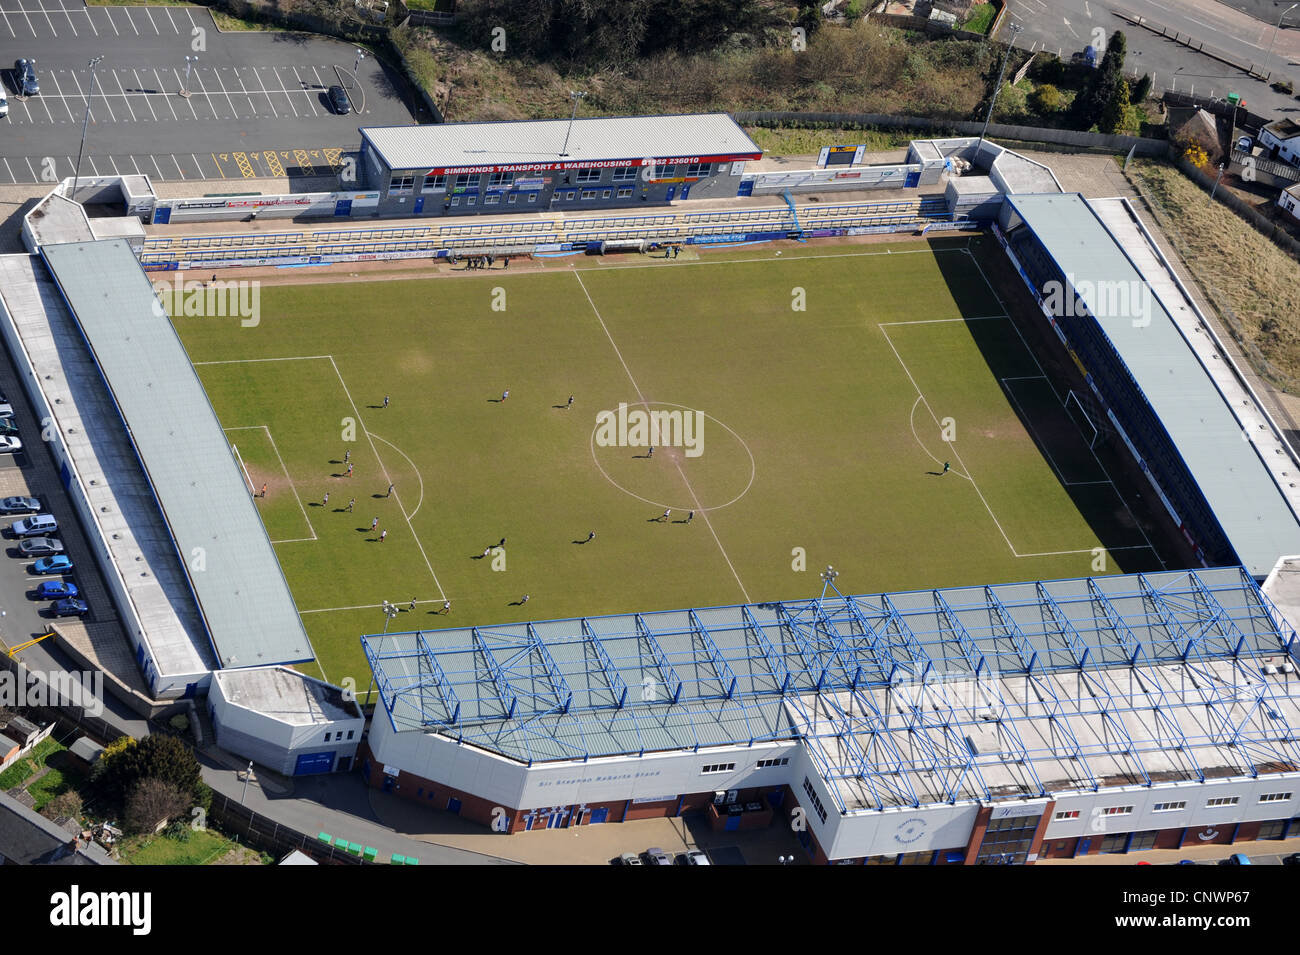 Aerial view of football match played at AFC Telford United stadium uk - Stock Image